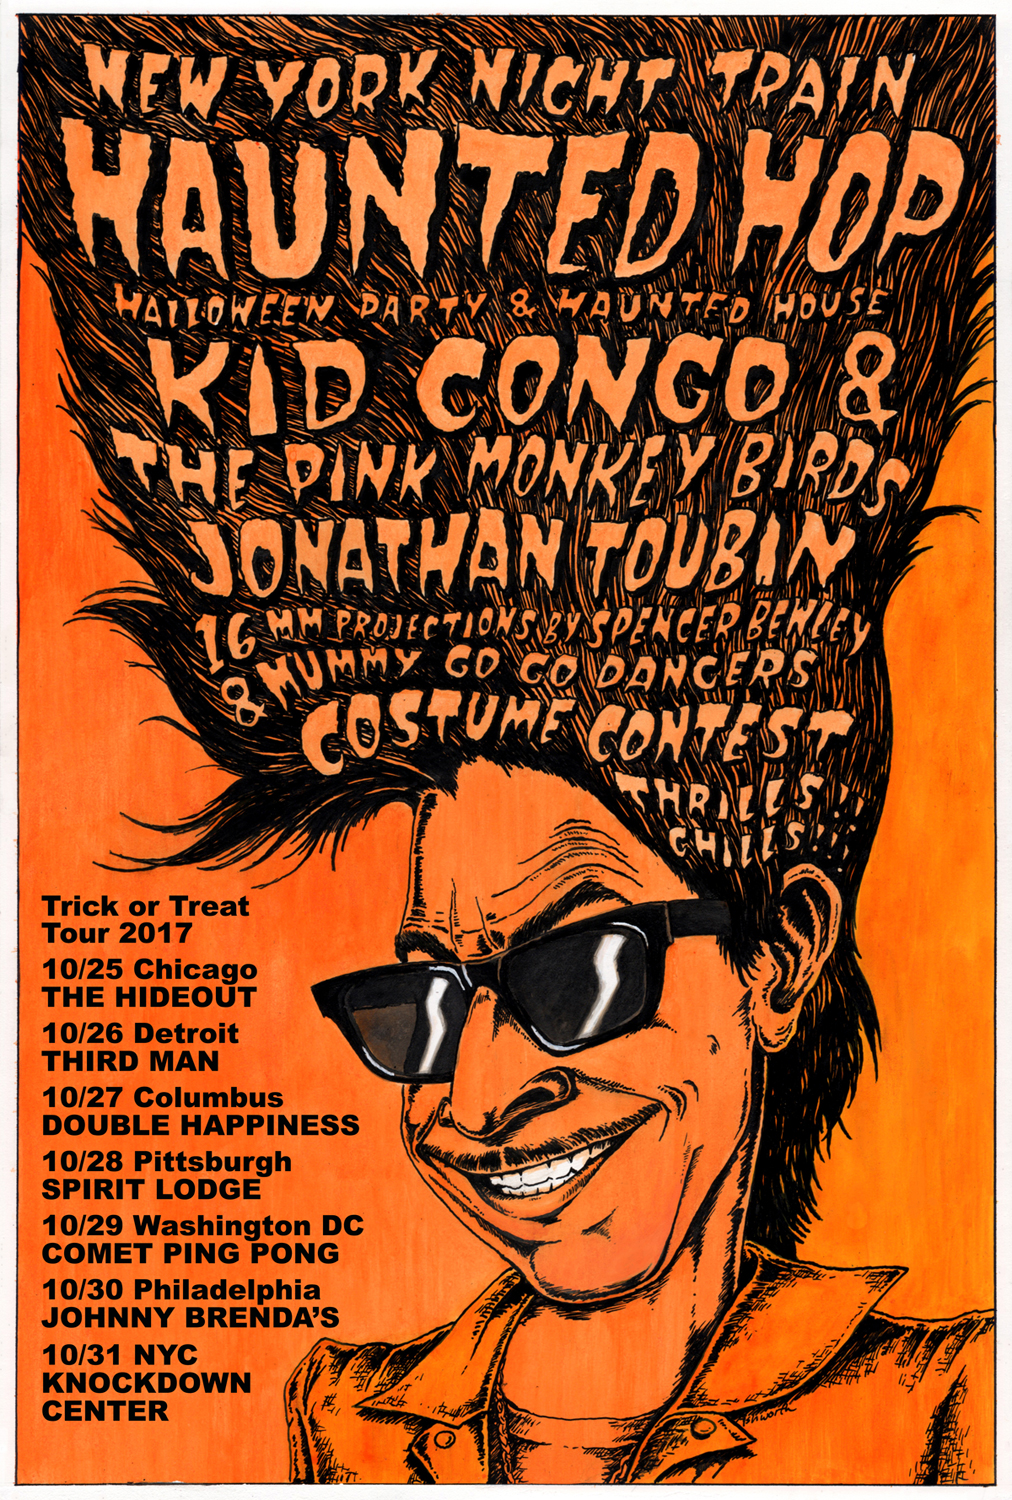 ny night train haunted hop halloween dance party tour with kid congo and the pink monkey birds dj jonathan toubin projectionist spencer bewley